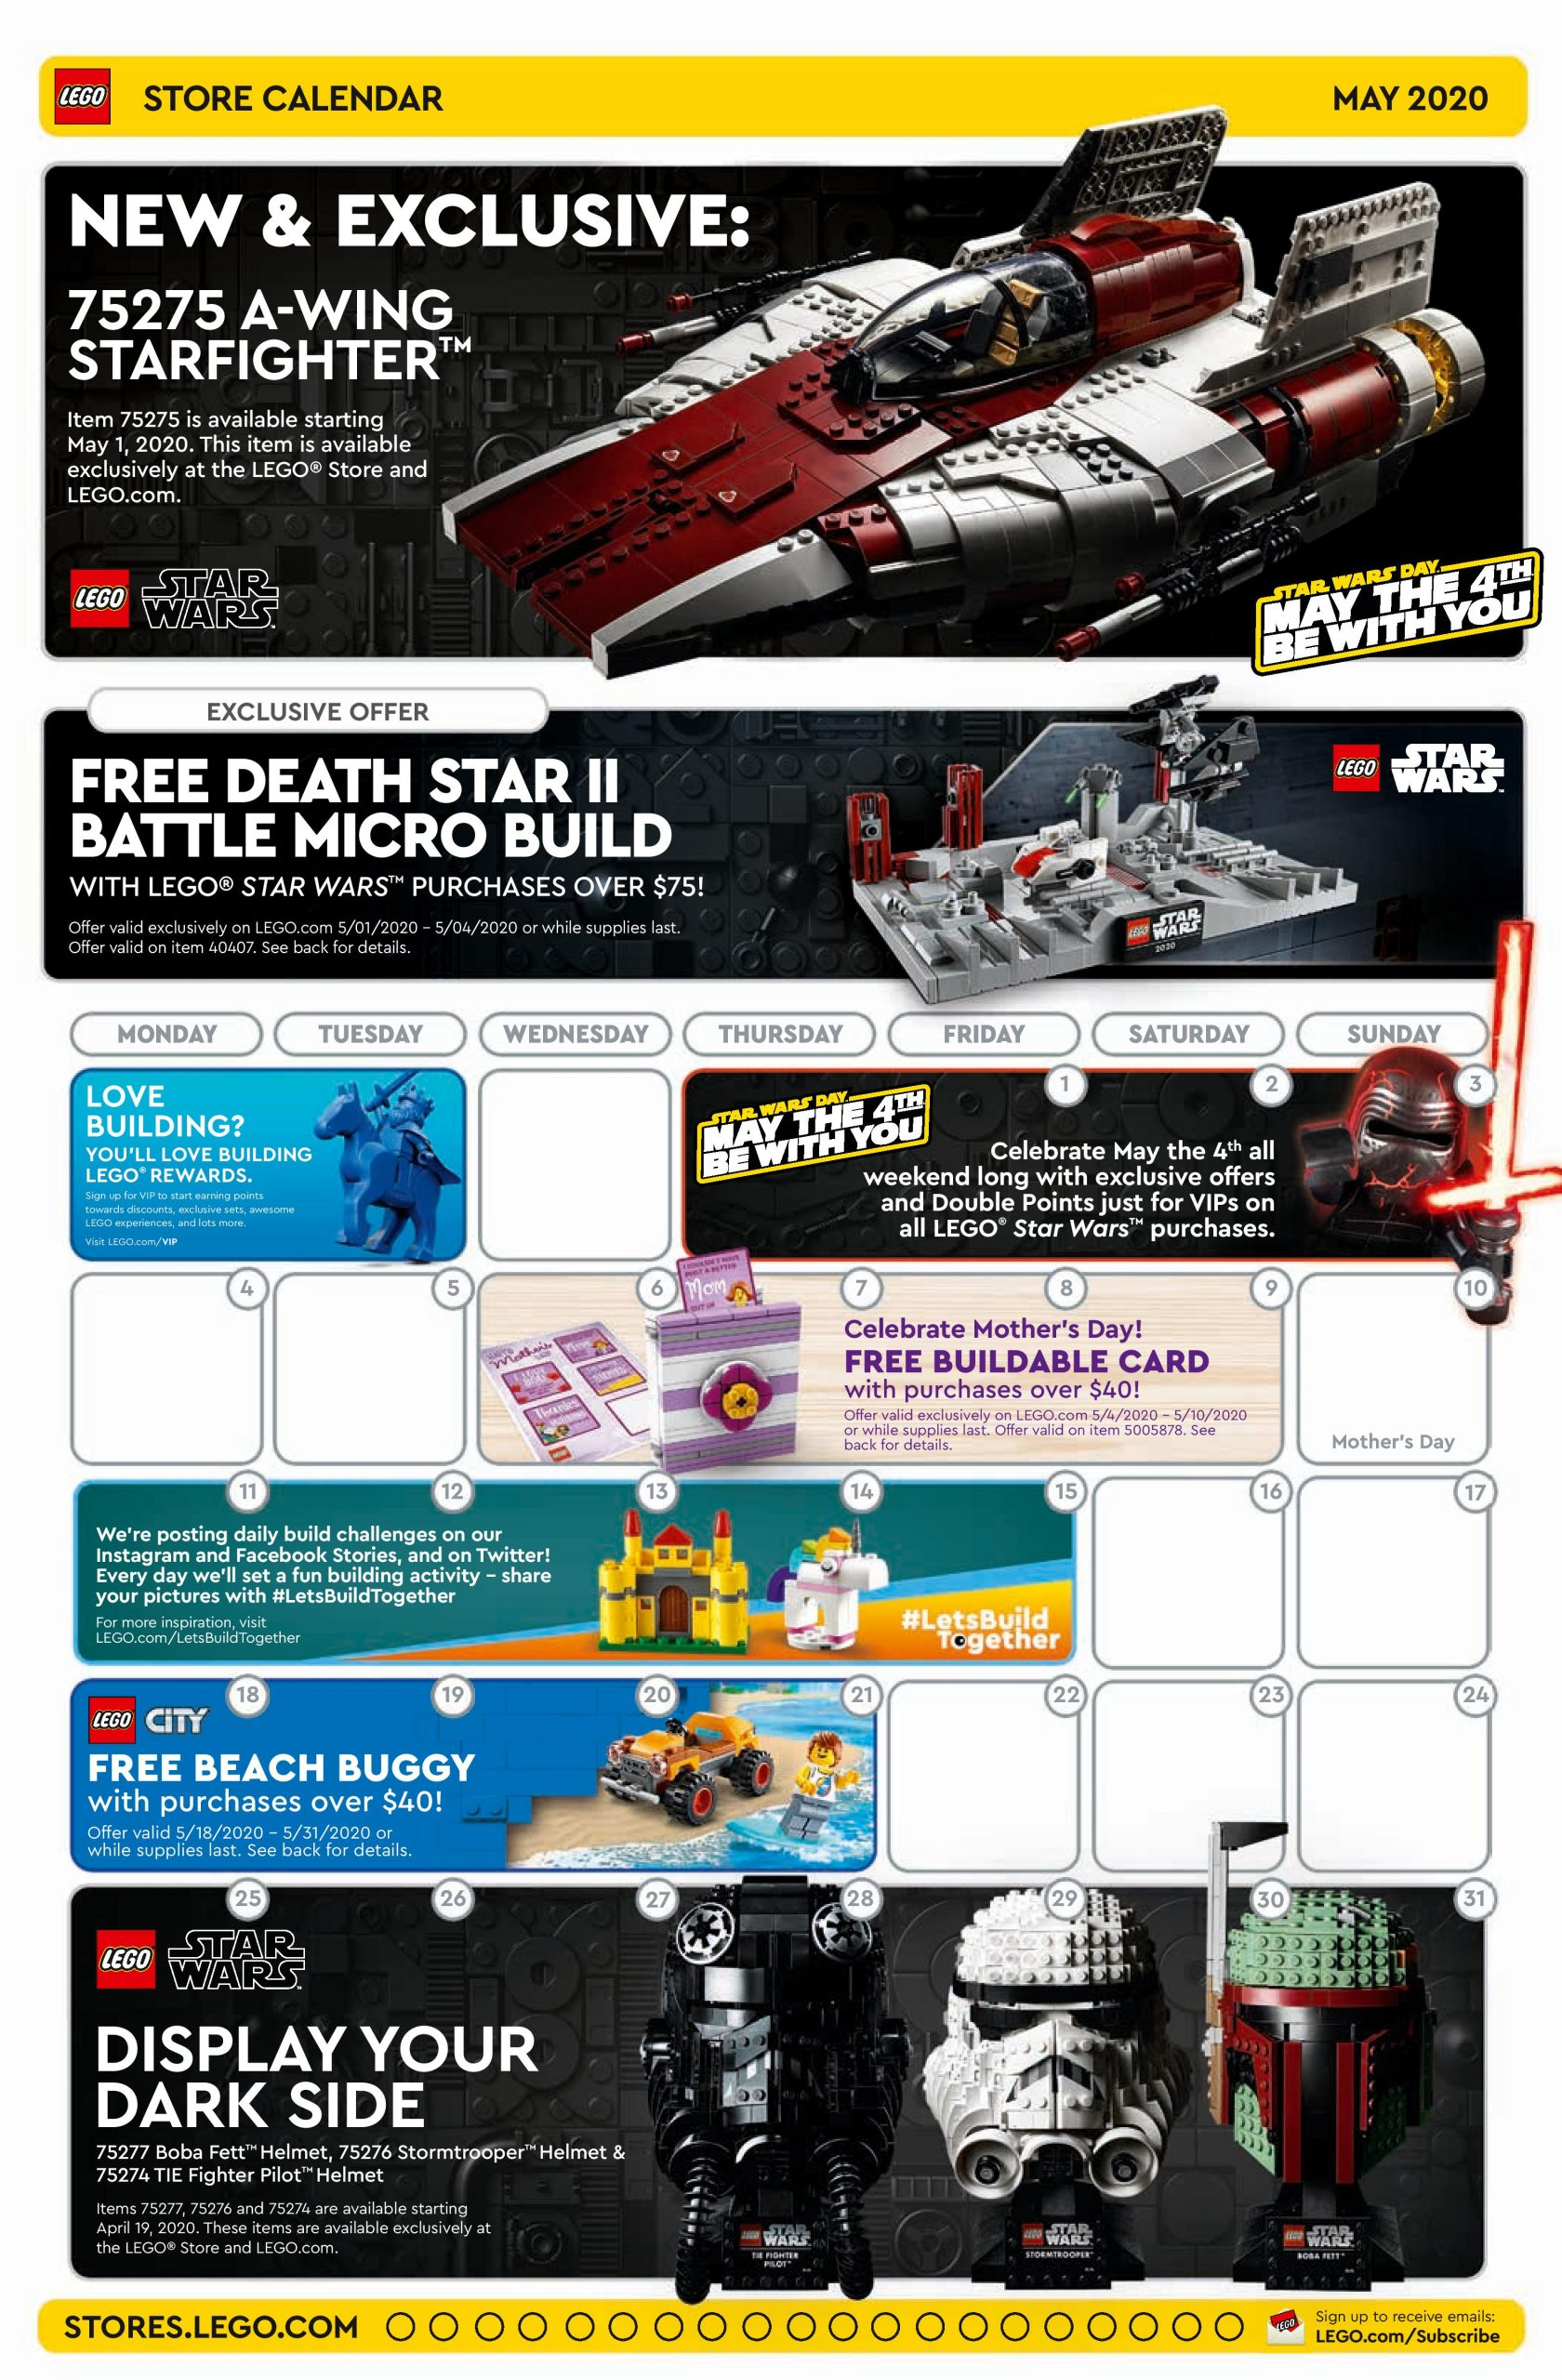 LEGO May 2020 Store Calendar Promotions & Events | The Brick Fan